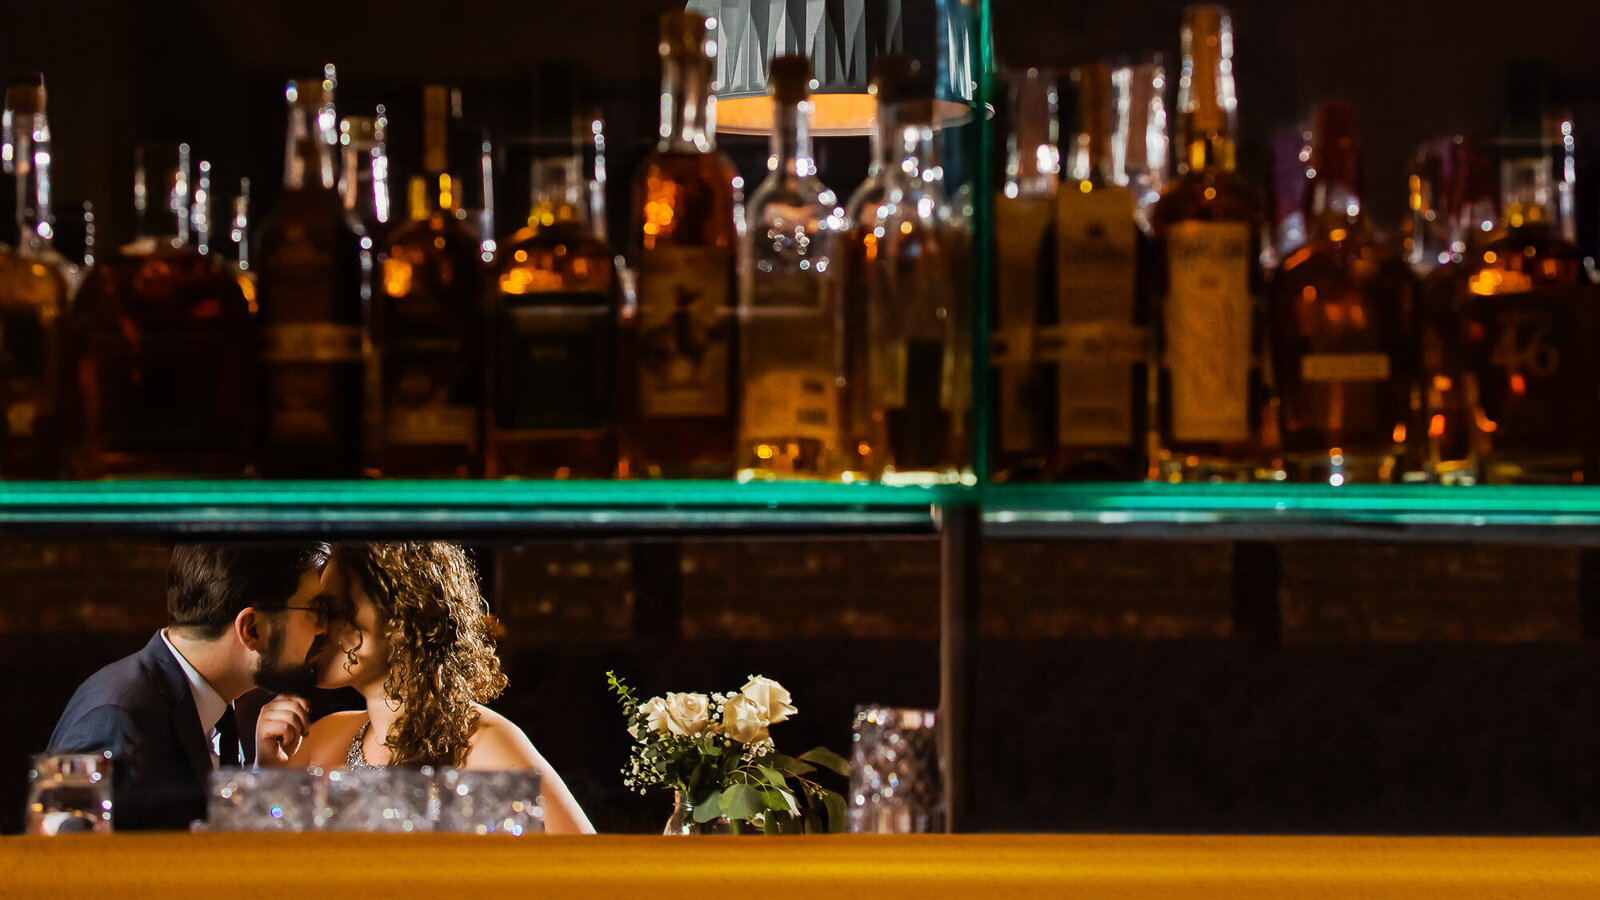 Creative wedding photo of bride and groom at the bar at their St. Louis Wedding